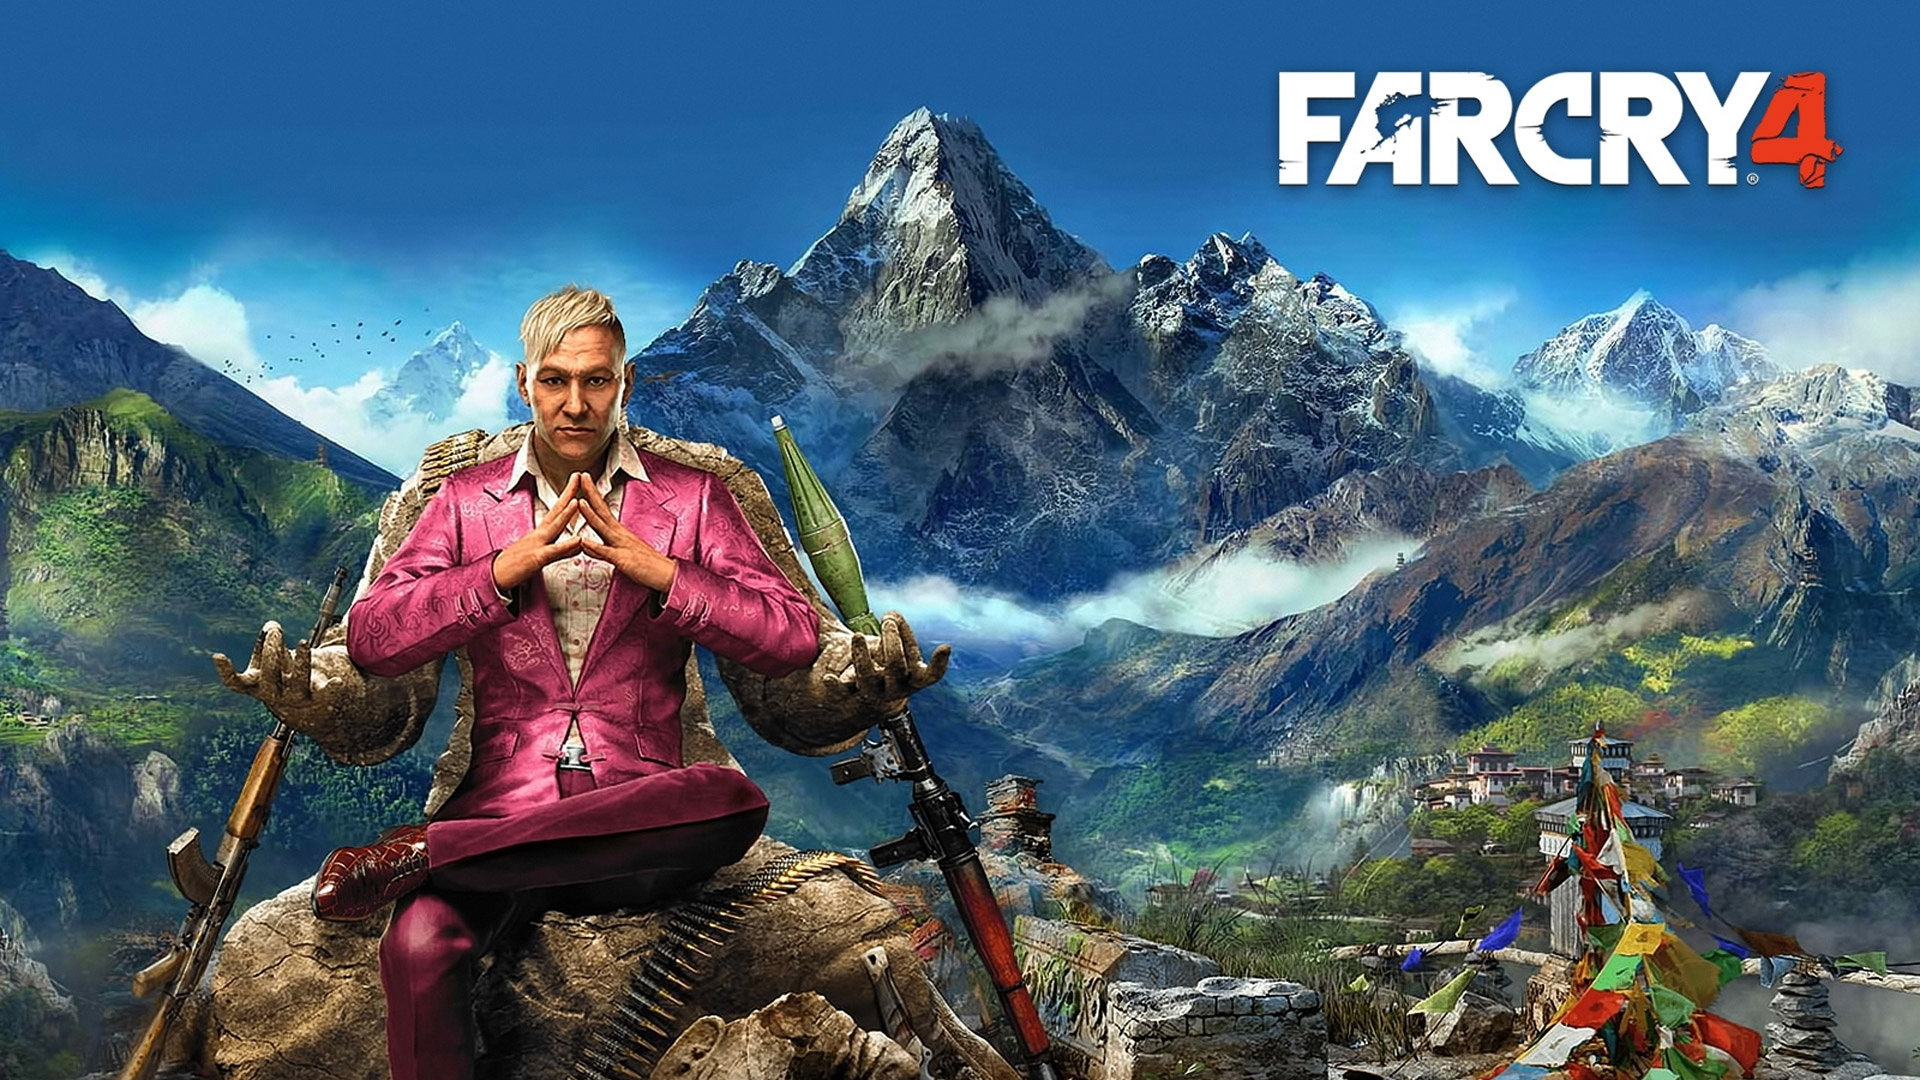 wallpaper #10 wallpaper from far cry 4 - gamepressure